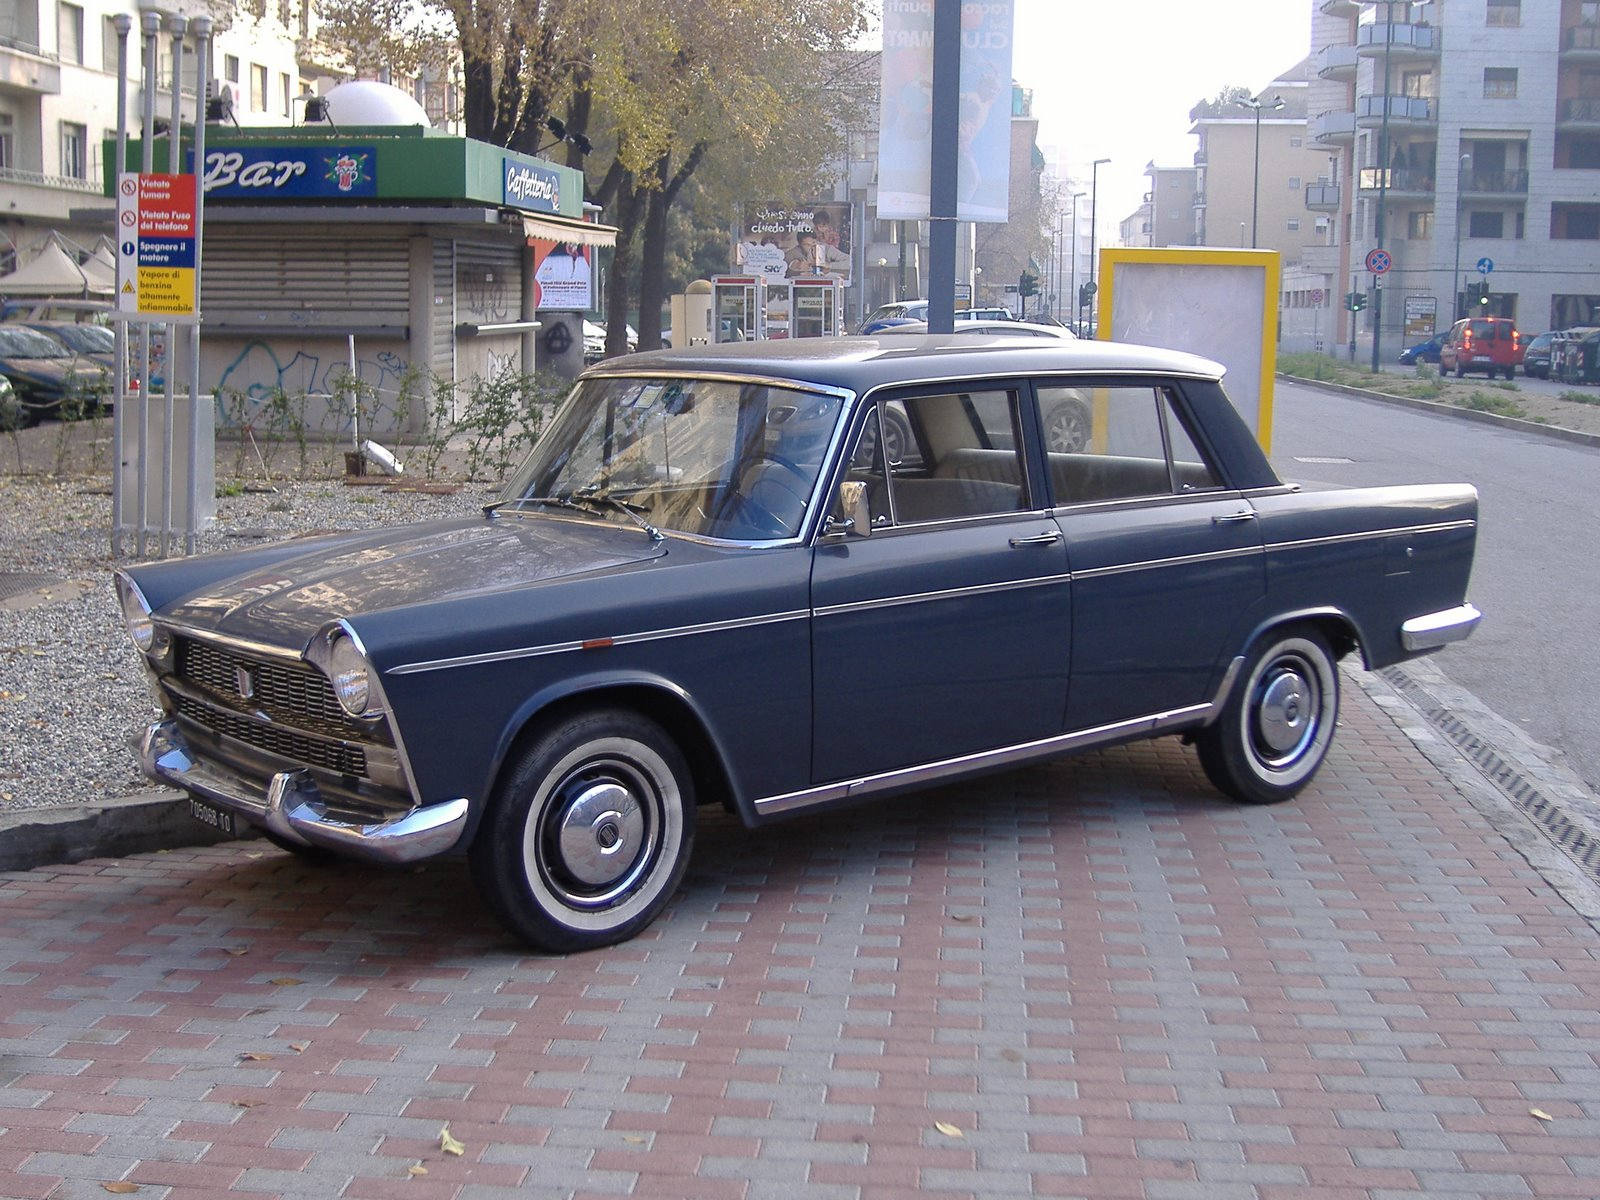 1963 Fiat 1500l Carsaddiction Com